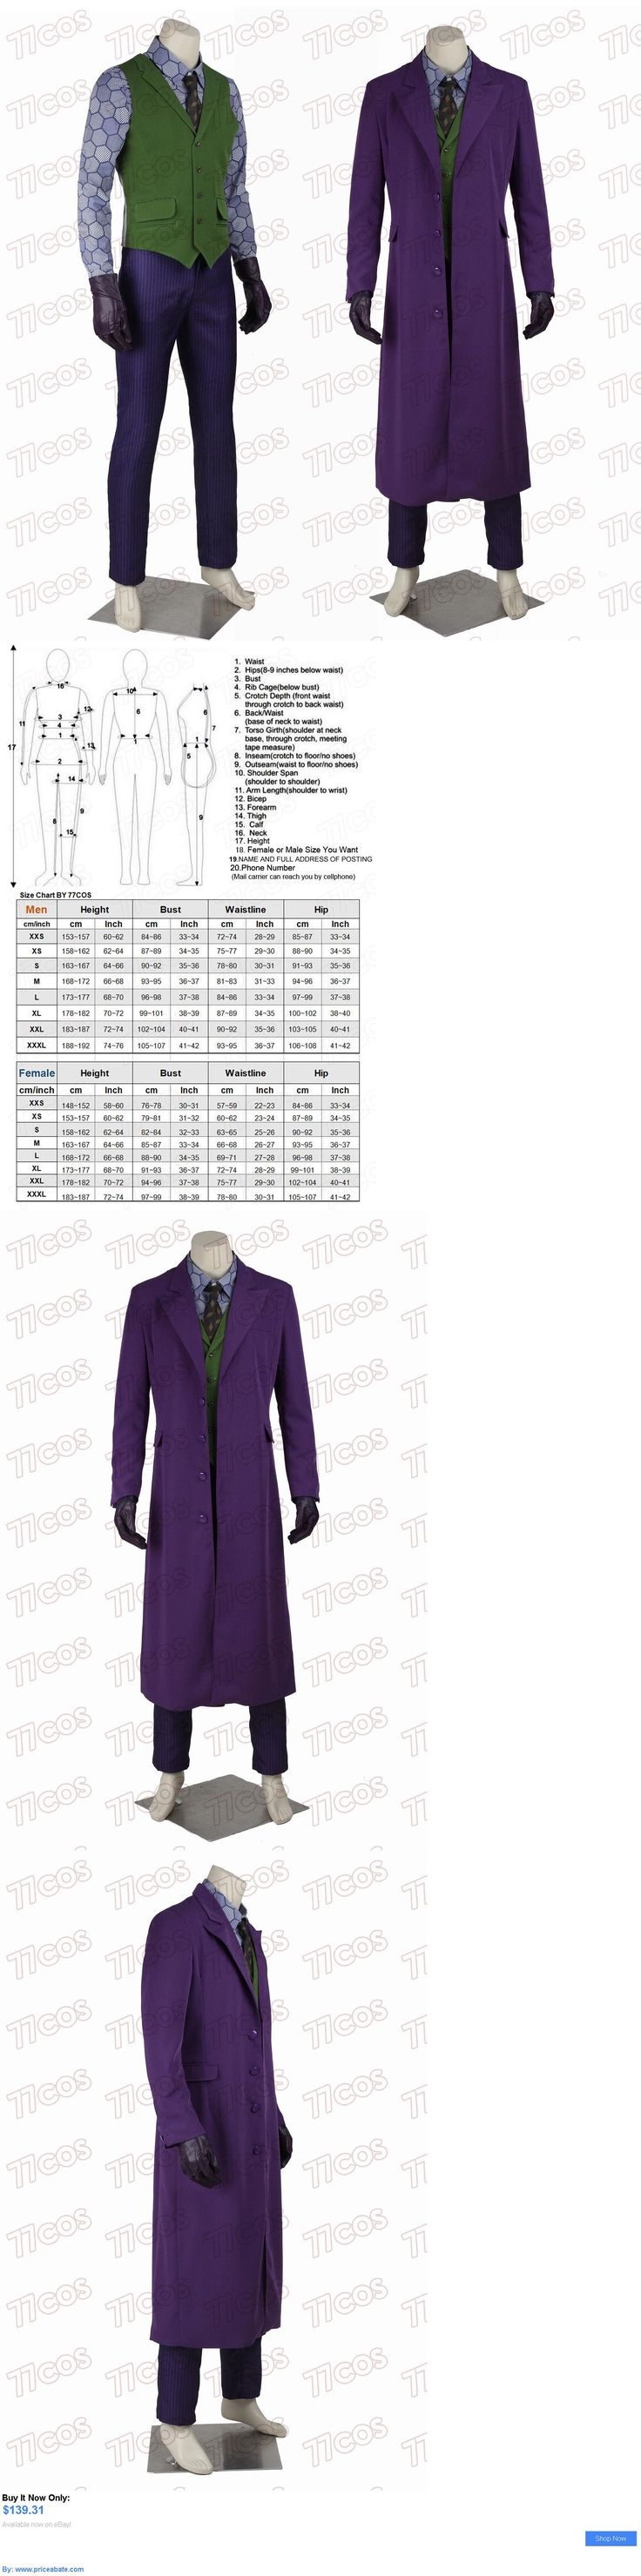 Men Costumes: Batman The Dark Knight Joker Heath Ledger Cosplay Costume Outfit Full Set BUY IT NOW ONLY: $139.31 #priceabateMenCostumes OR #priceabate